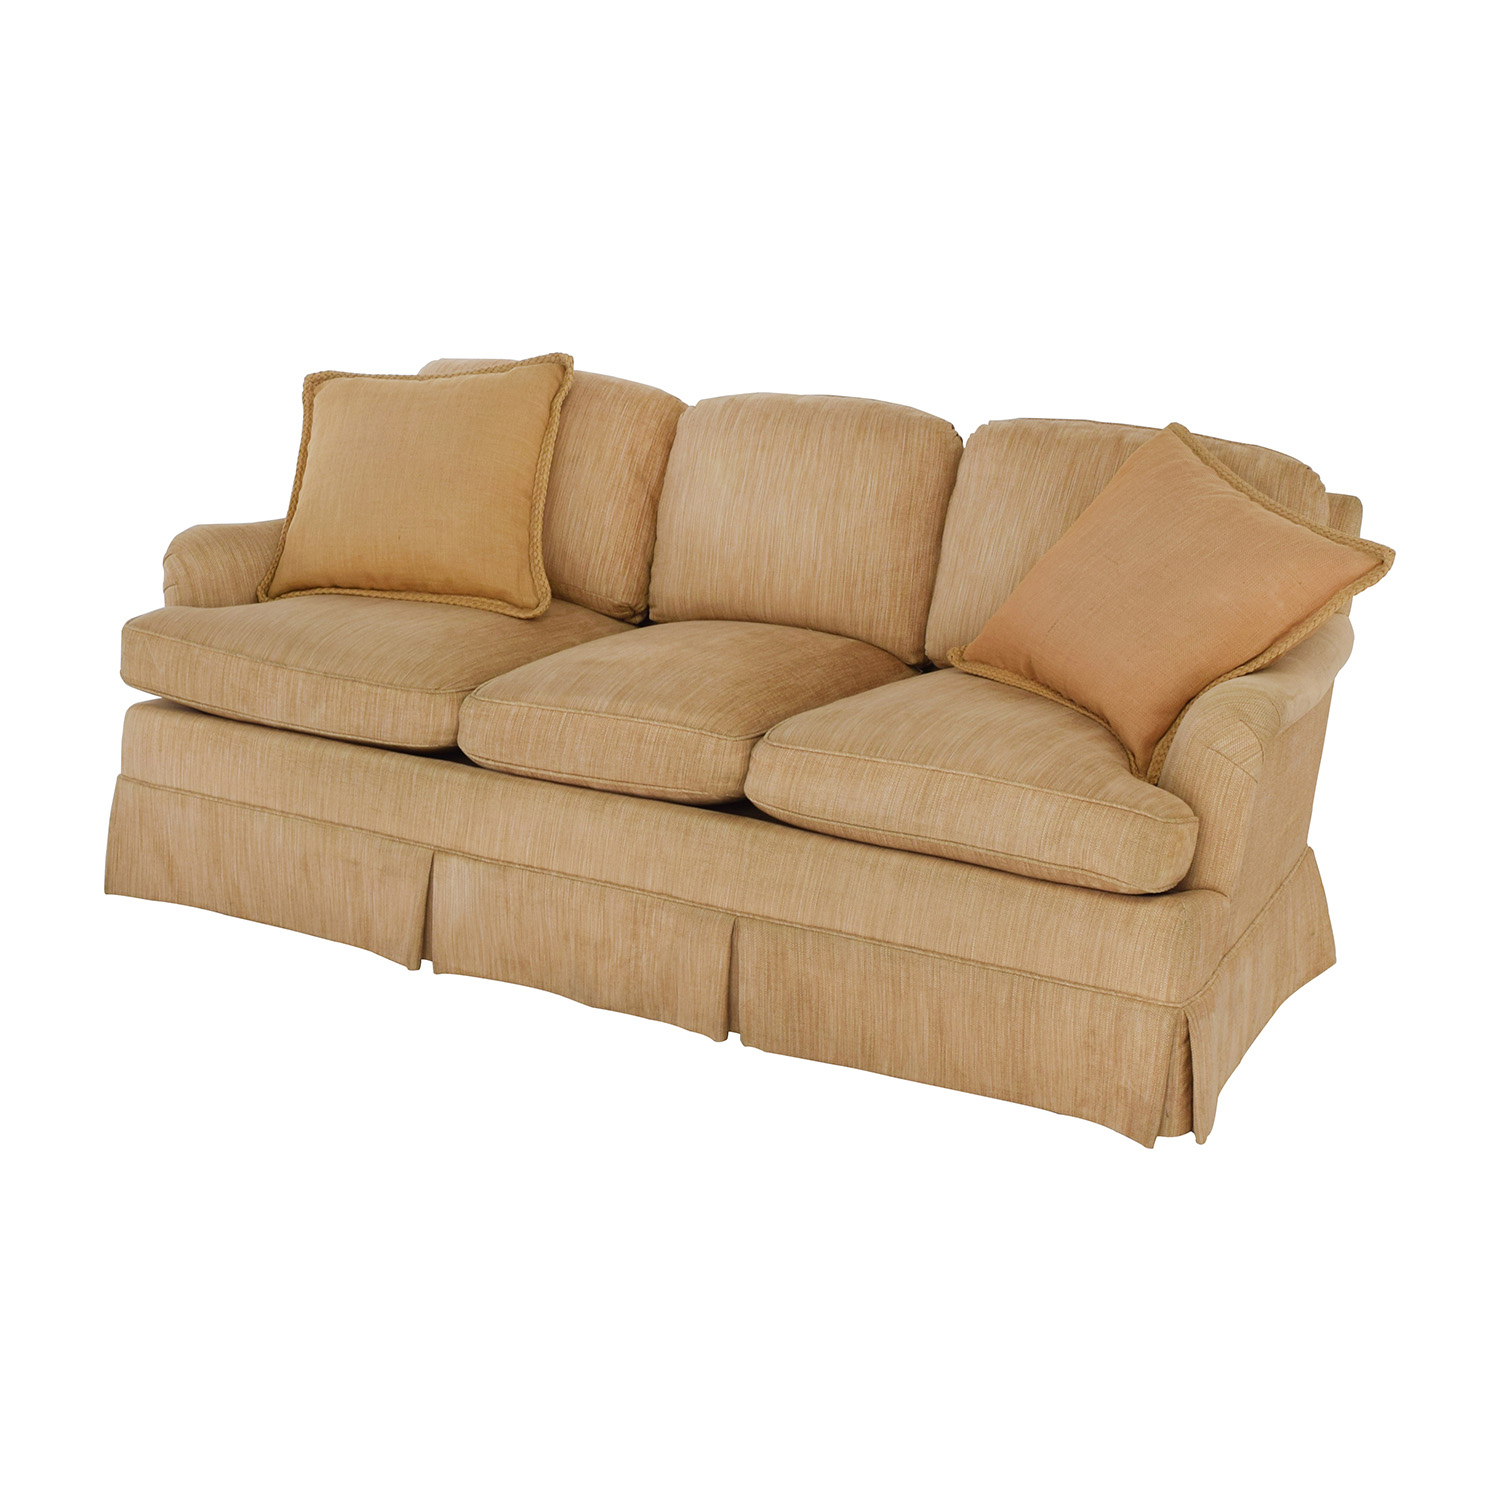 Pottery Barn Sofas Pb Basic Slipcovers Every Living Room Needs A